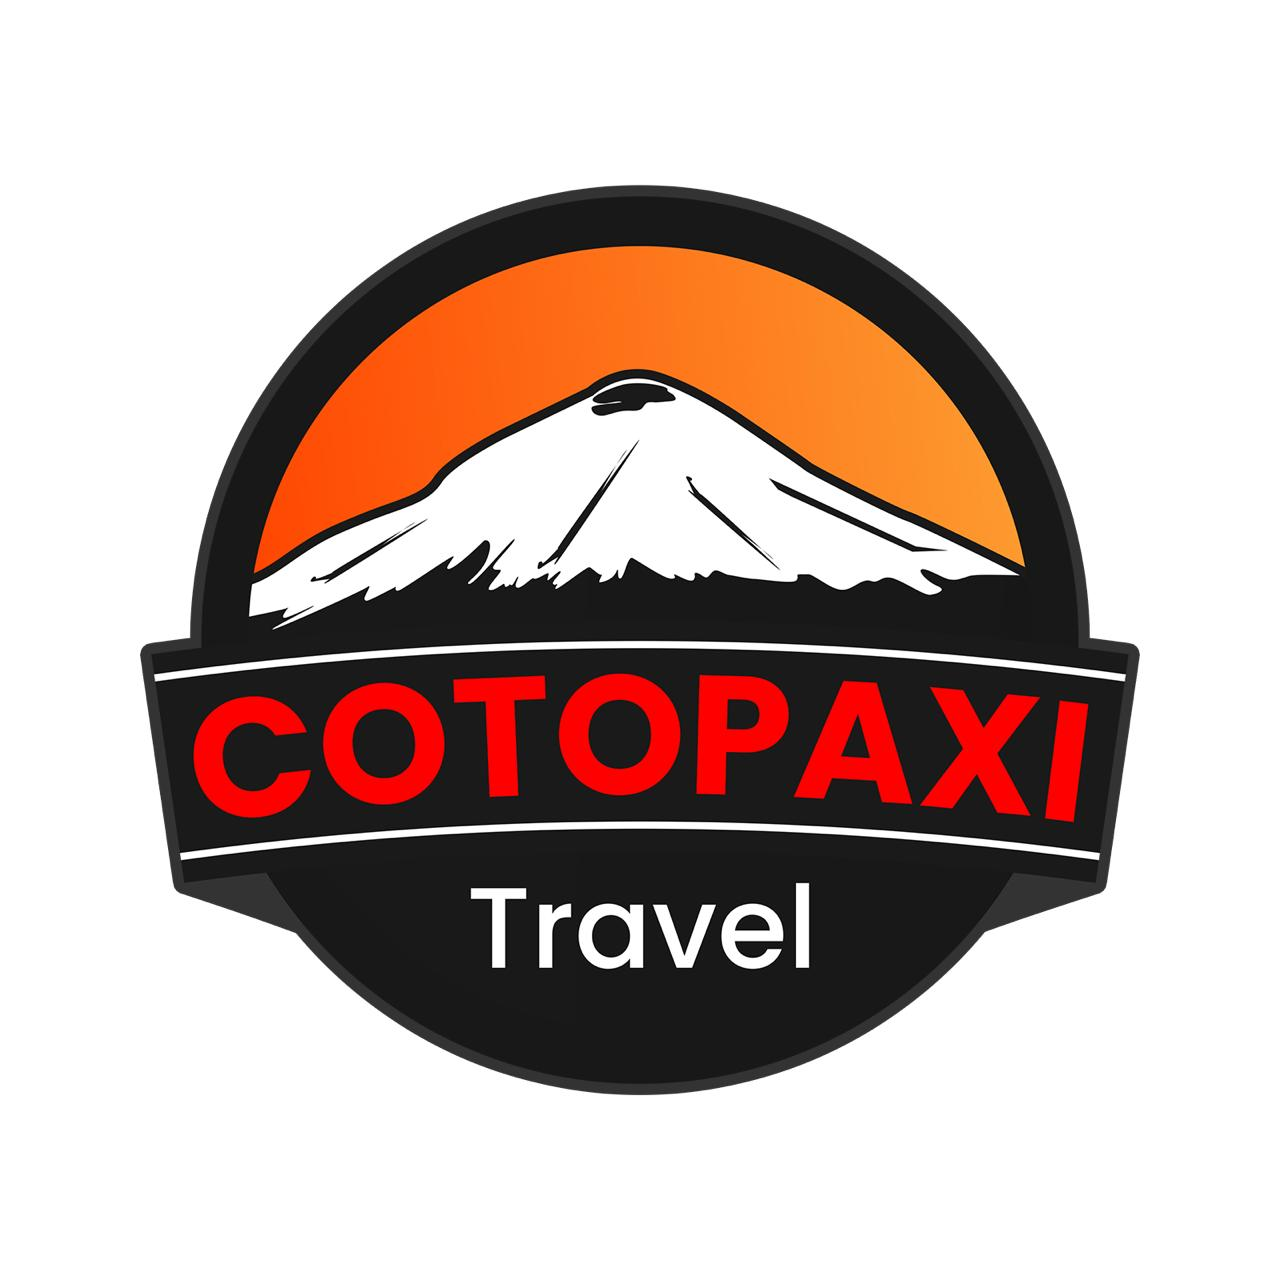 Cotopaxi Travel Blog